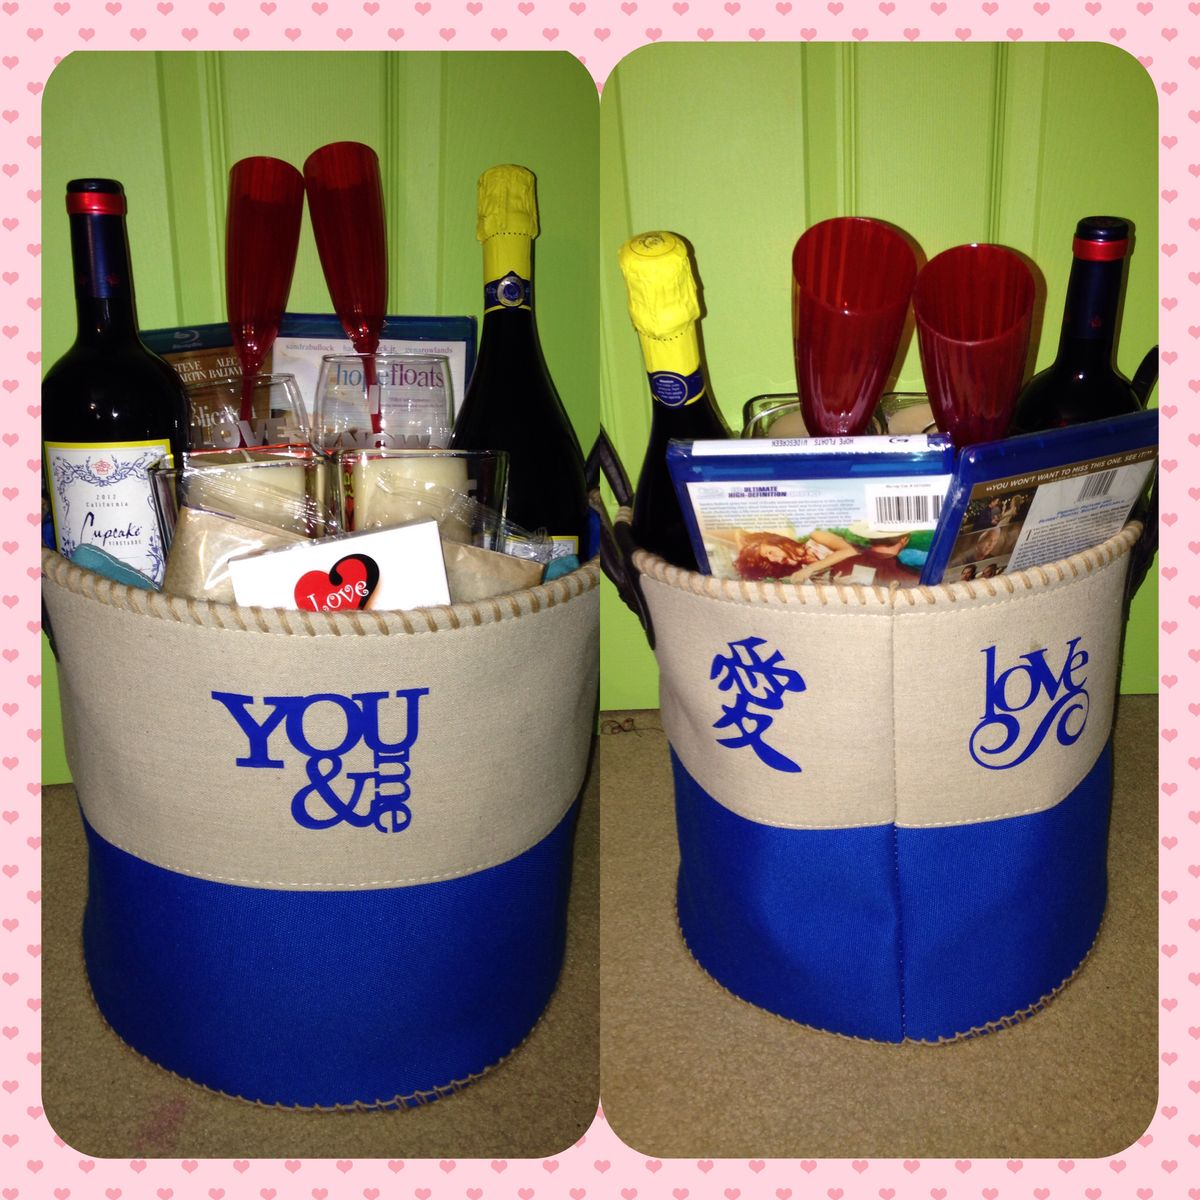 Date Night Gift For Wedding : Date Night Basket for wedding gift Gift Ideas Pinterest Date ...